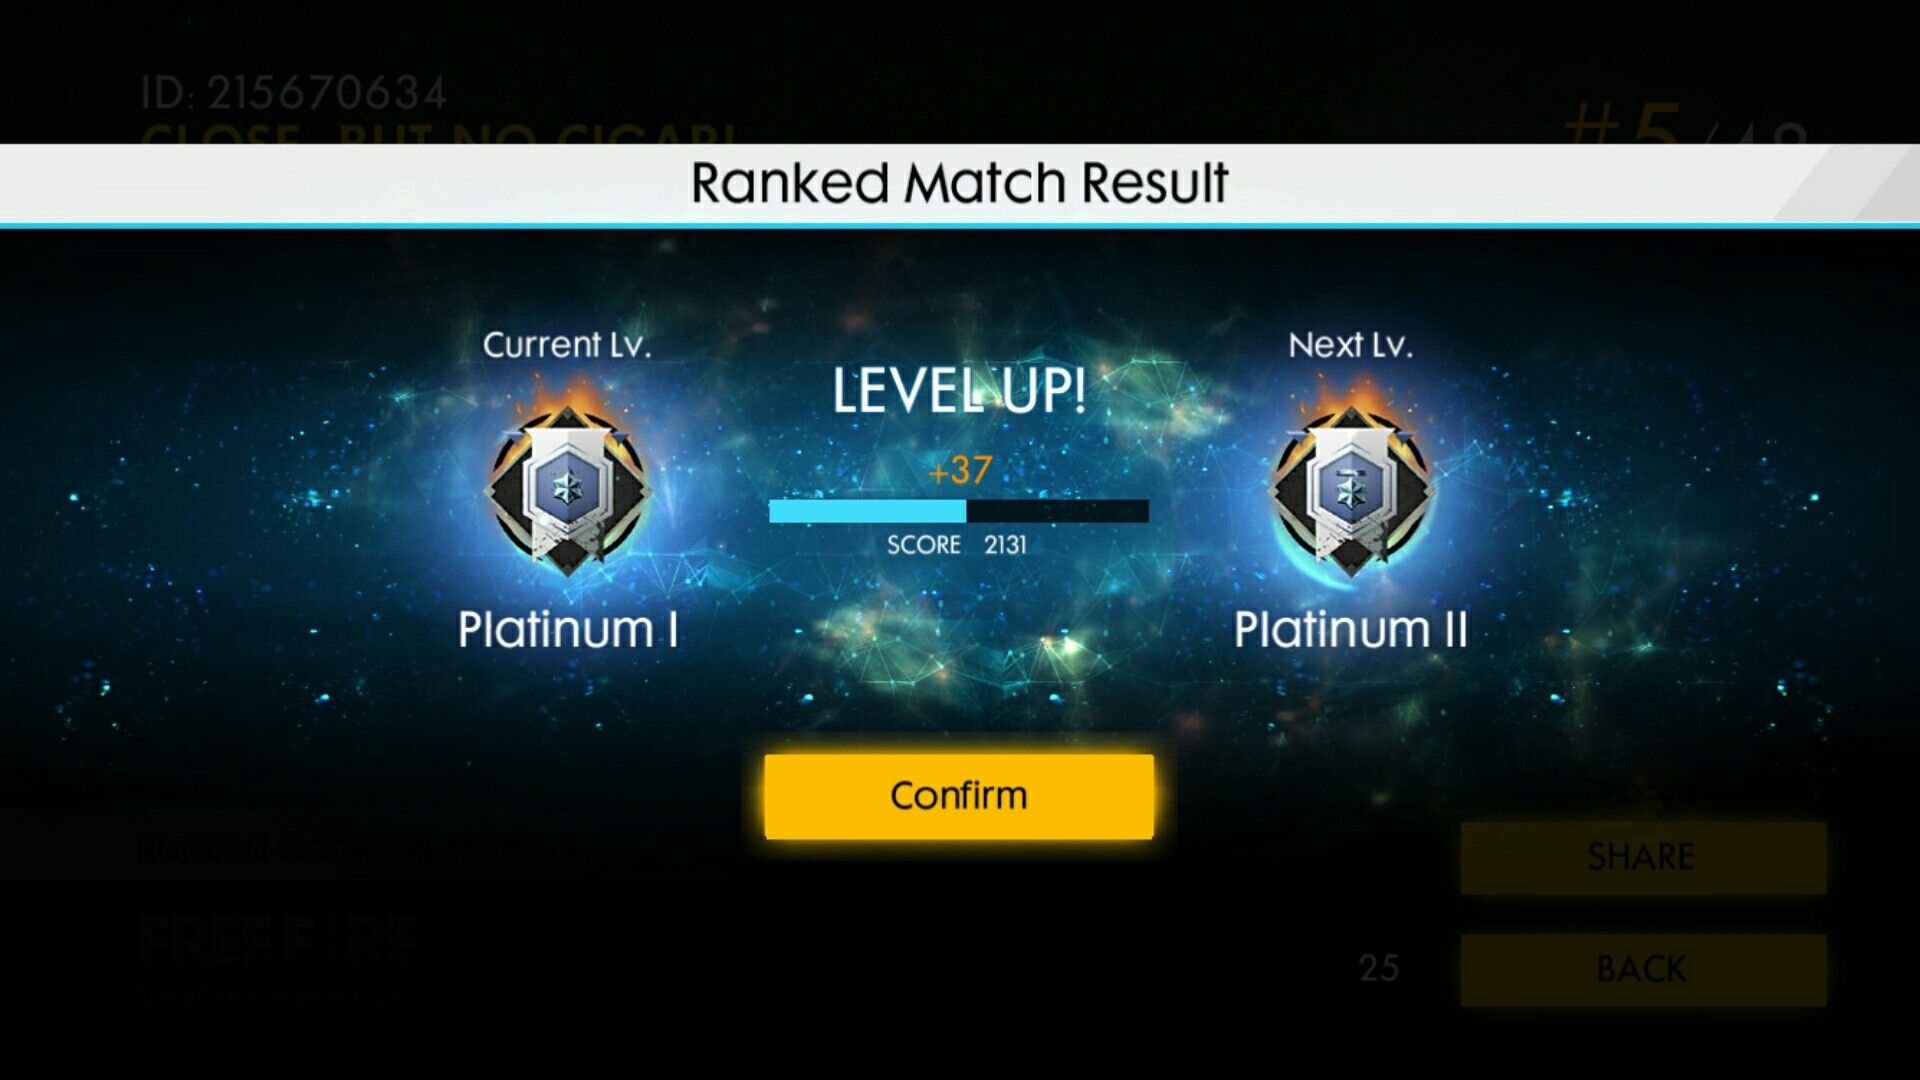 Ranked Free Fire Platinum Id Hexagon888 Game Wallpaper Iphone Fire Level Up